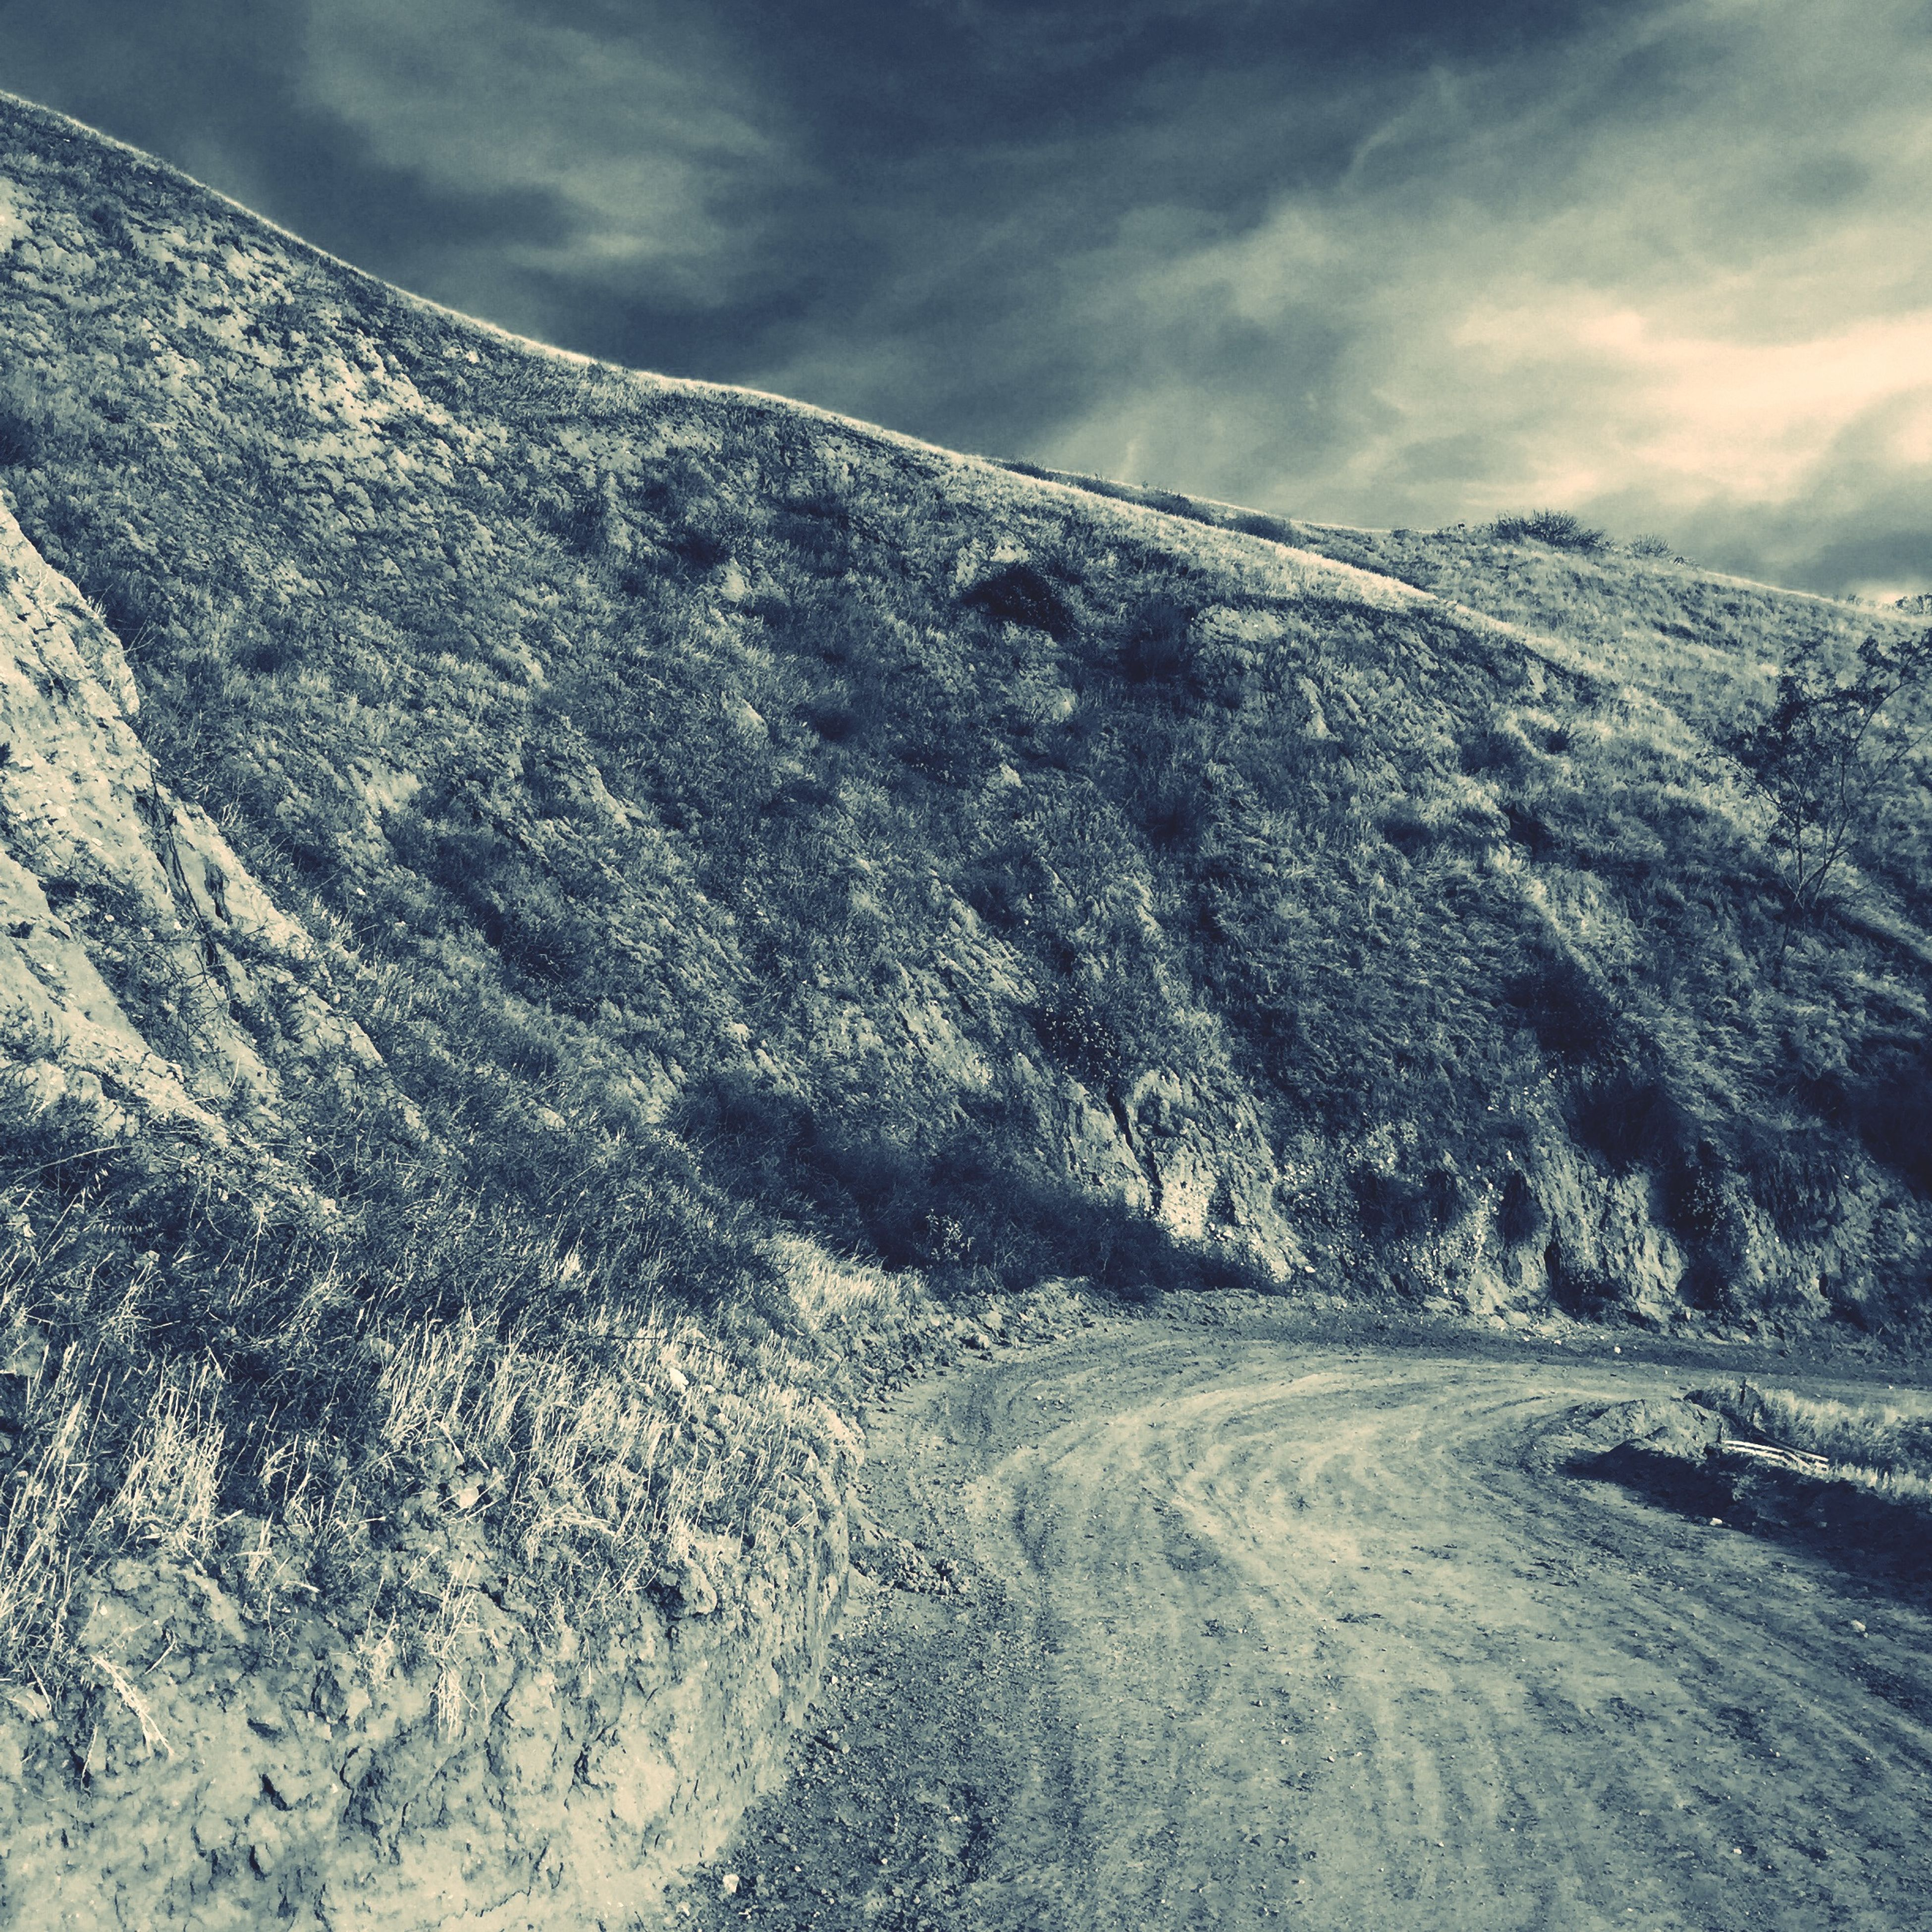 snow, winter, cold temperature, sky, mountain, weather, tranquility, tranquil scene, cloud - sky, scenics, nature, season, landscape, beauty in nature, cloudy, non-urban scene, day, frozen, outdoors, covering